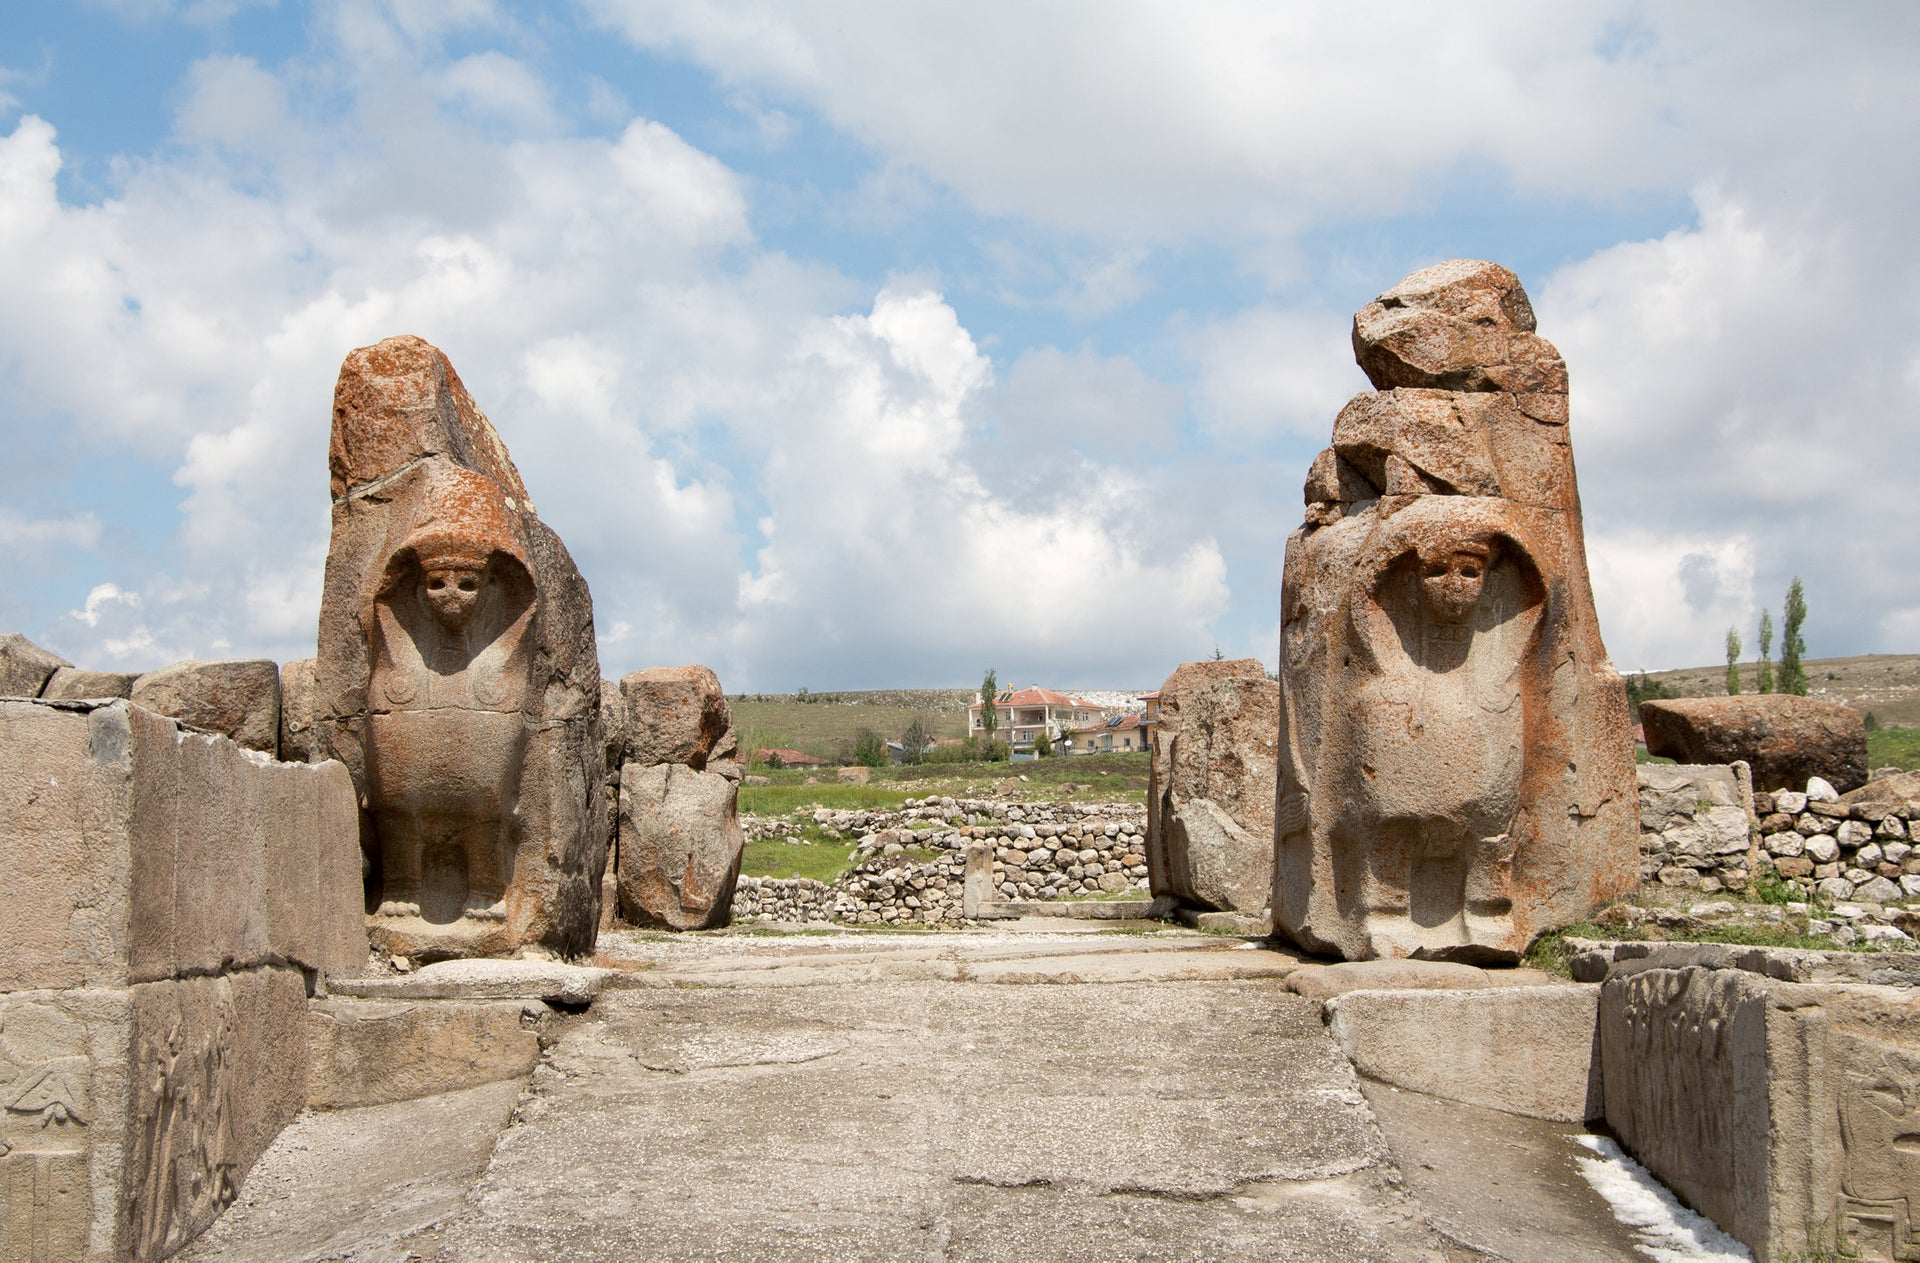 Sphinxes, not an Egyptian thing necessarily: Sphinx Gate at the Hittite town of Alaca Höyük, Turkey